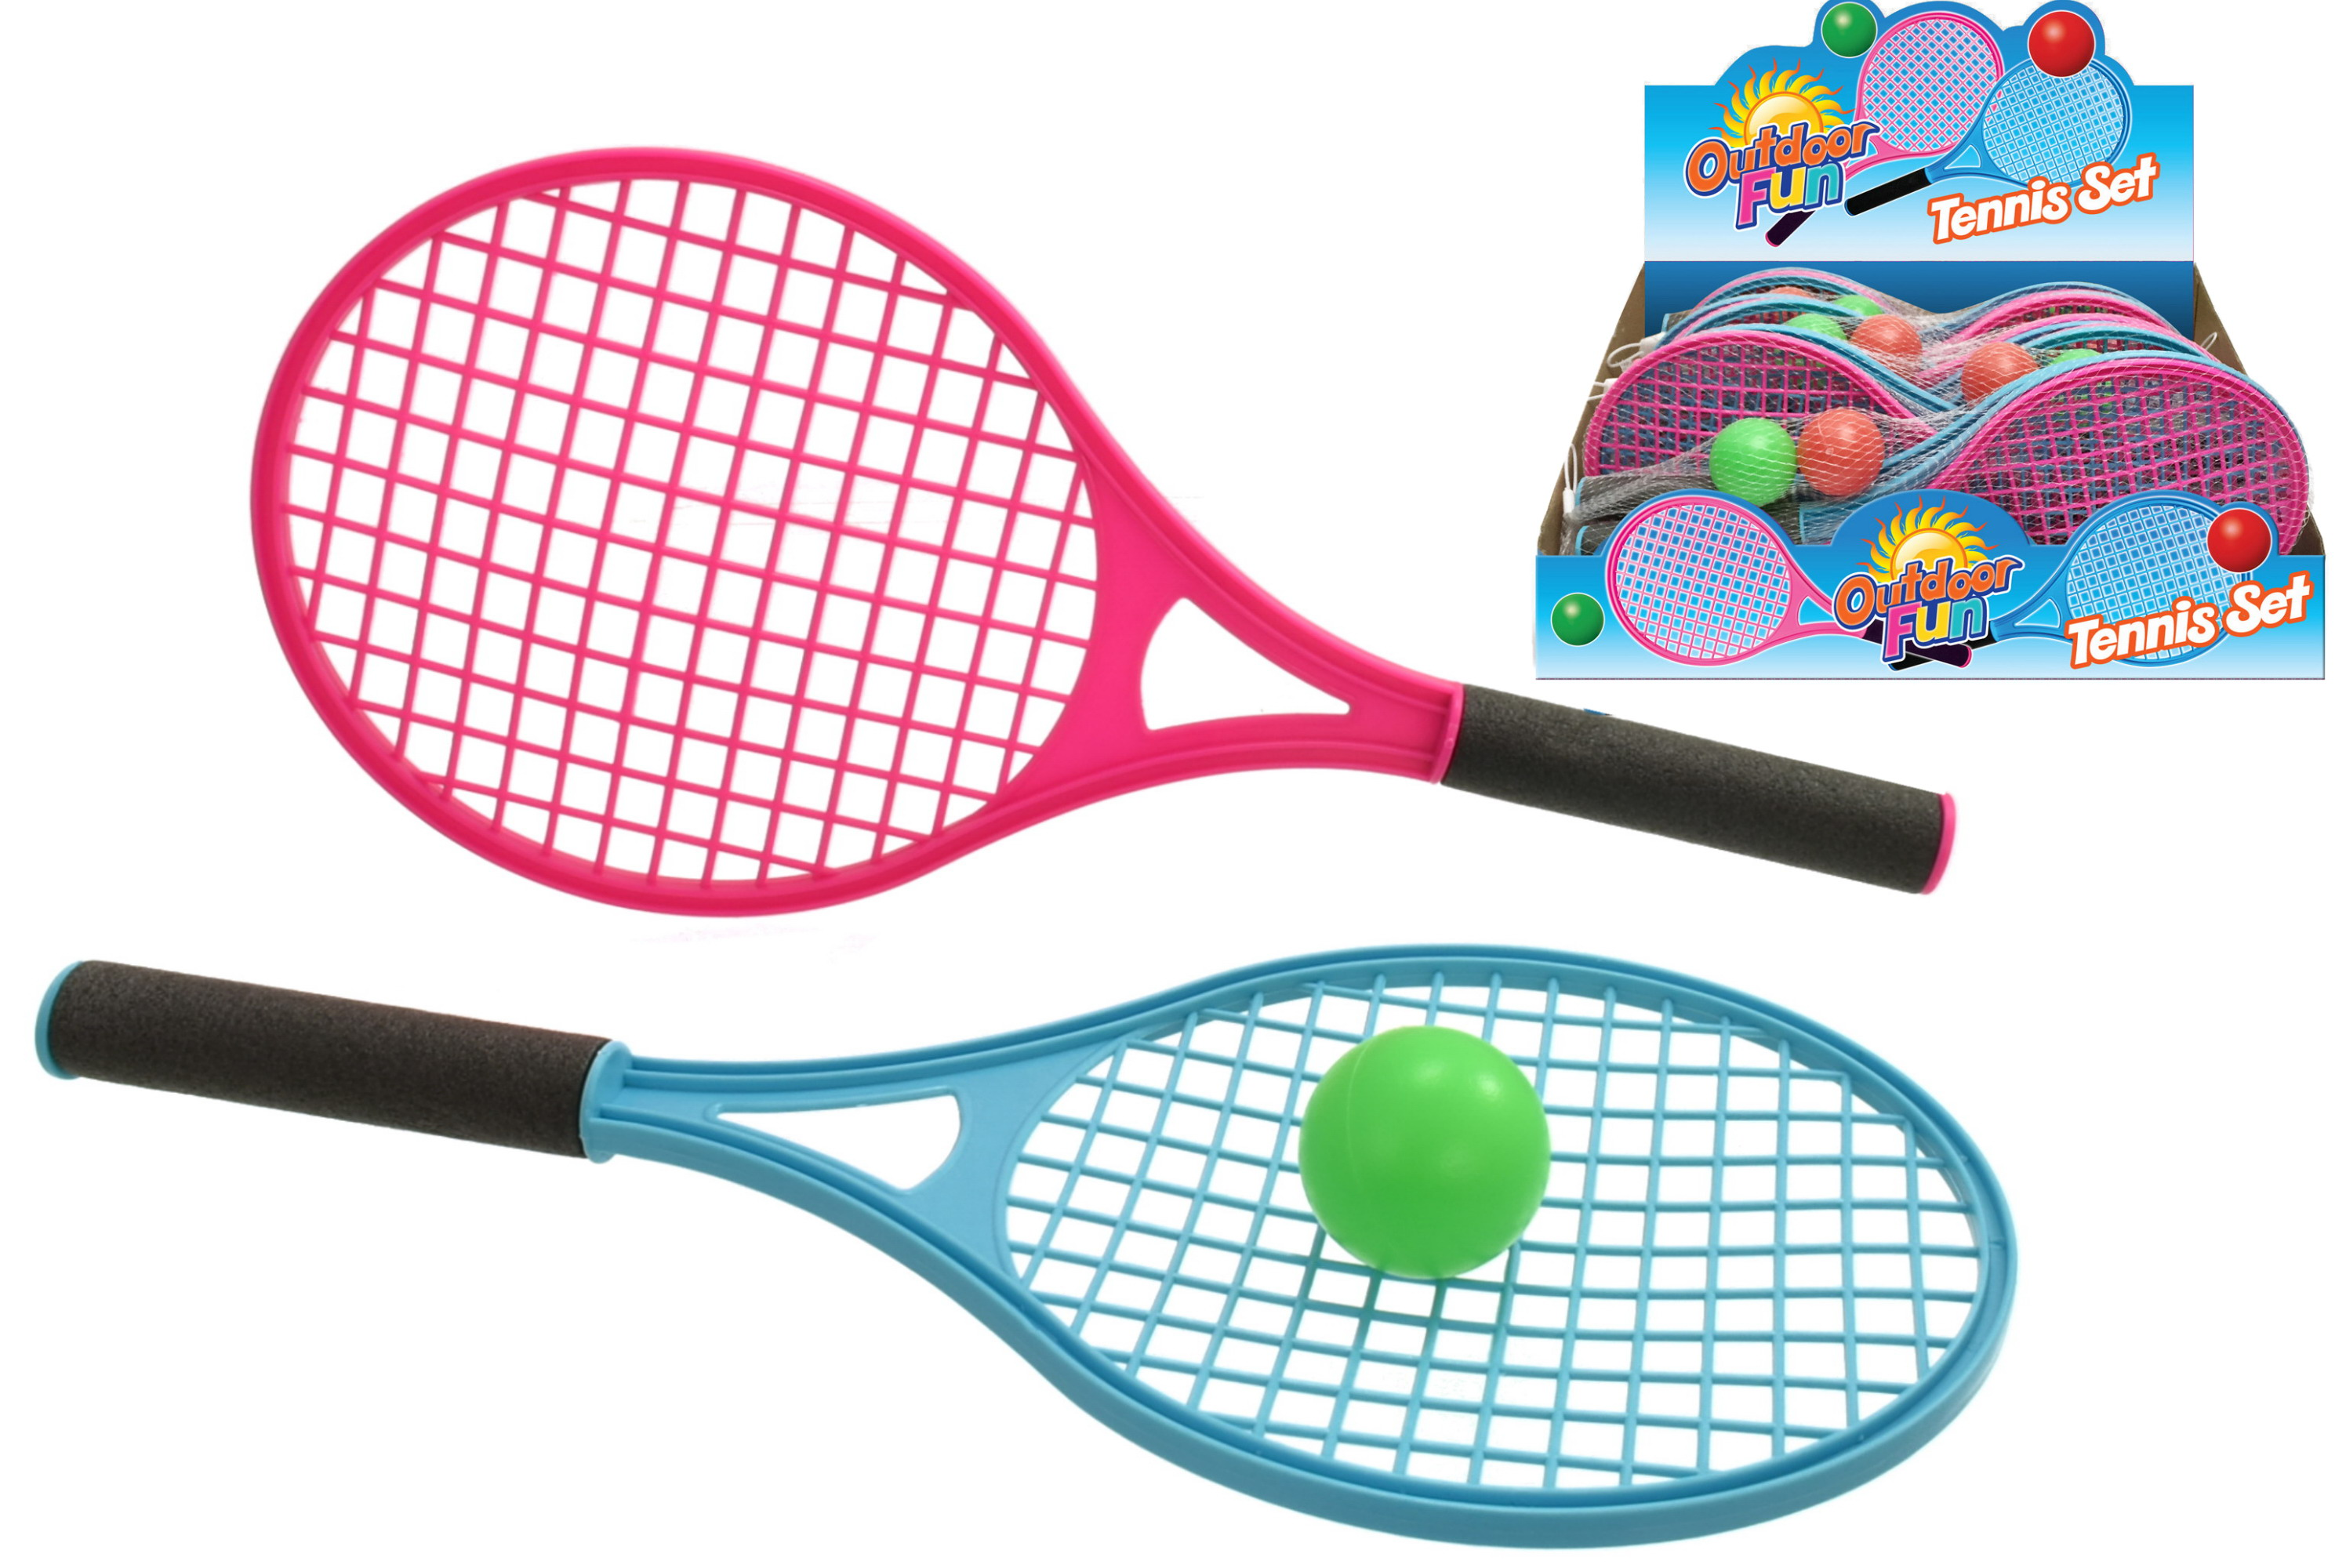 2 Player Plastic Tennis Set With 2 Balls - Netted